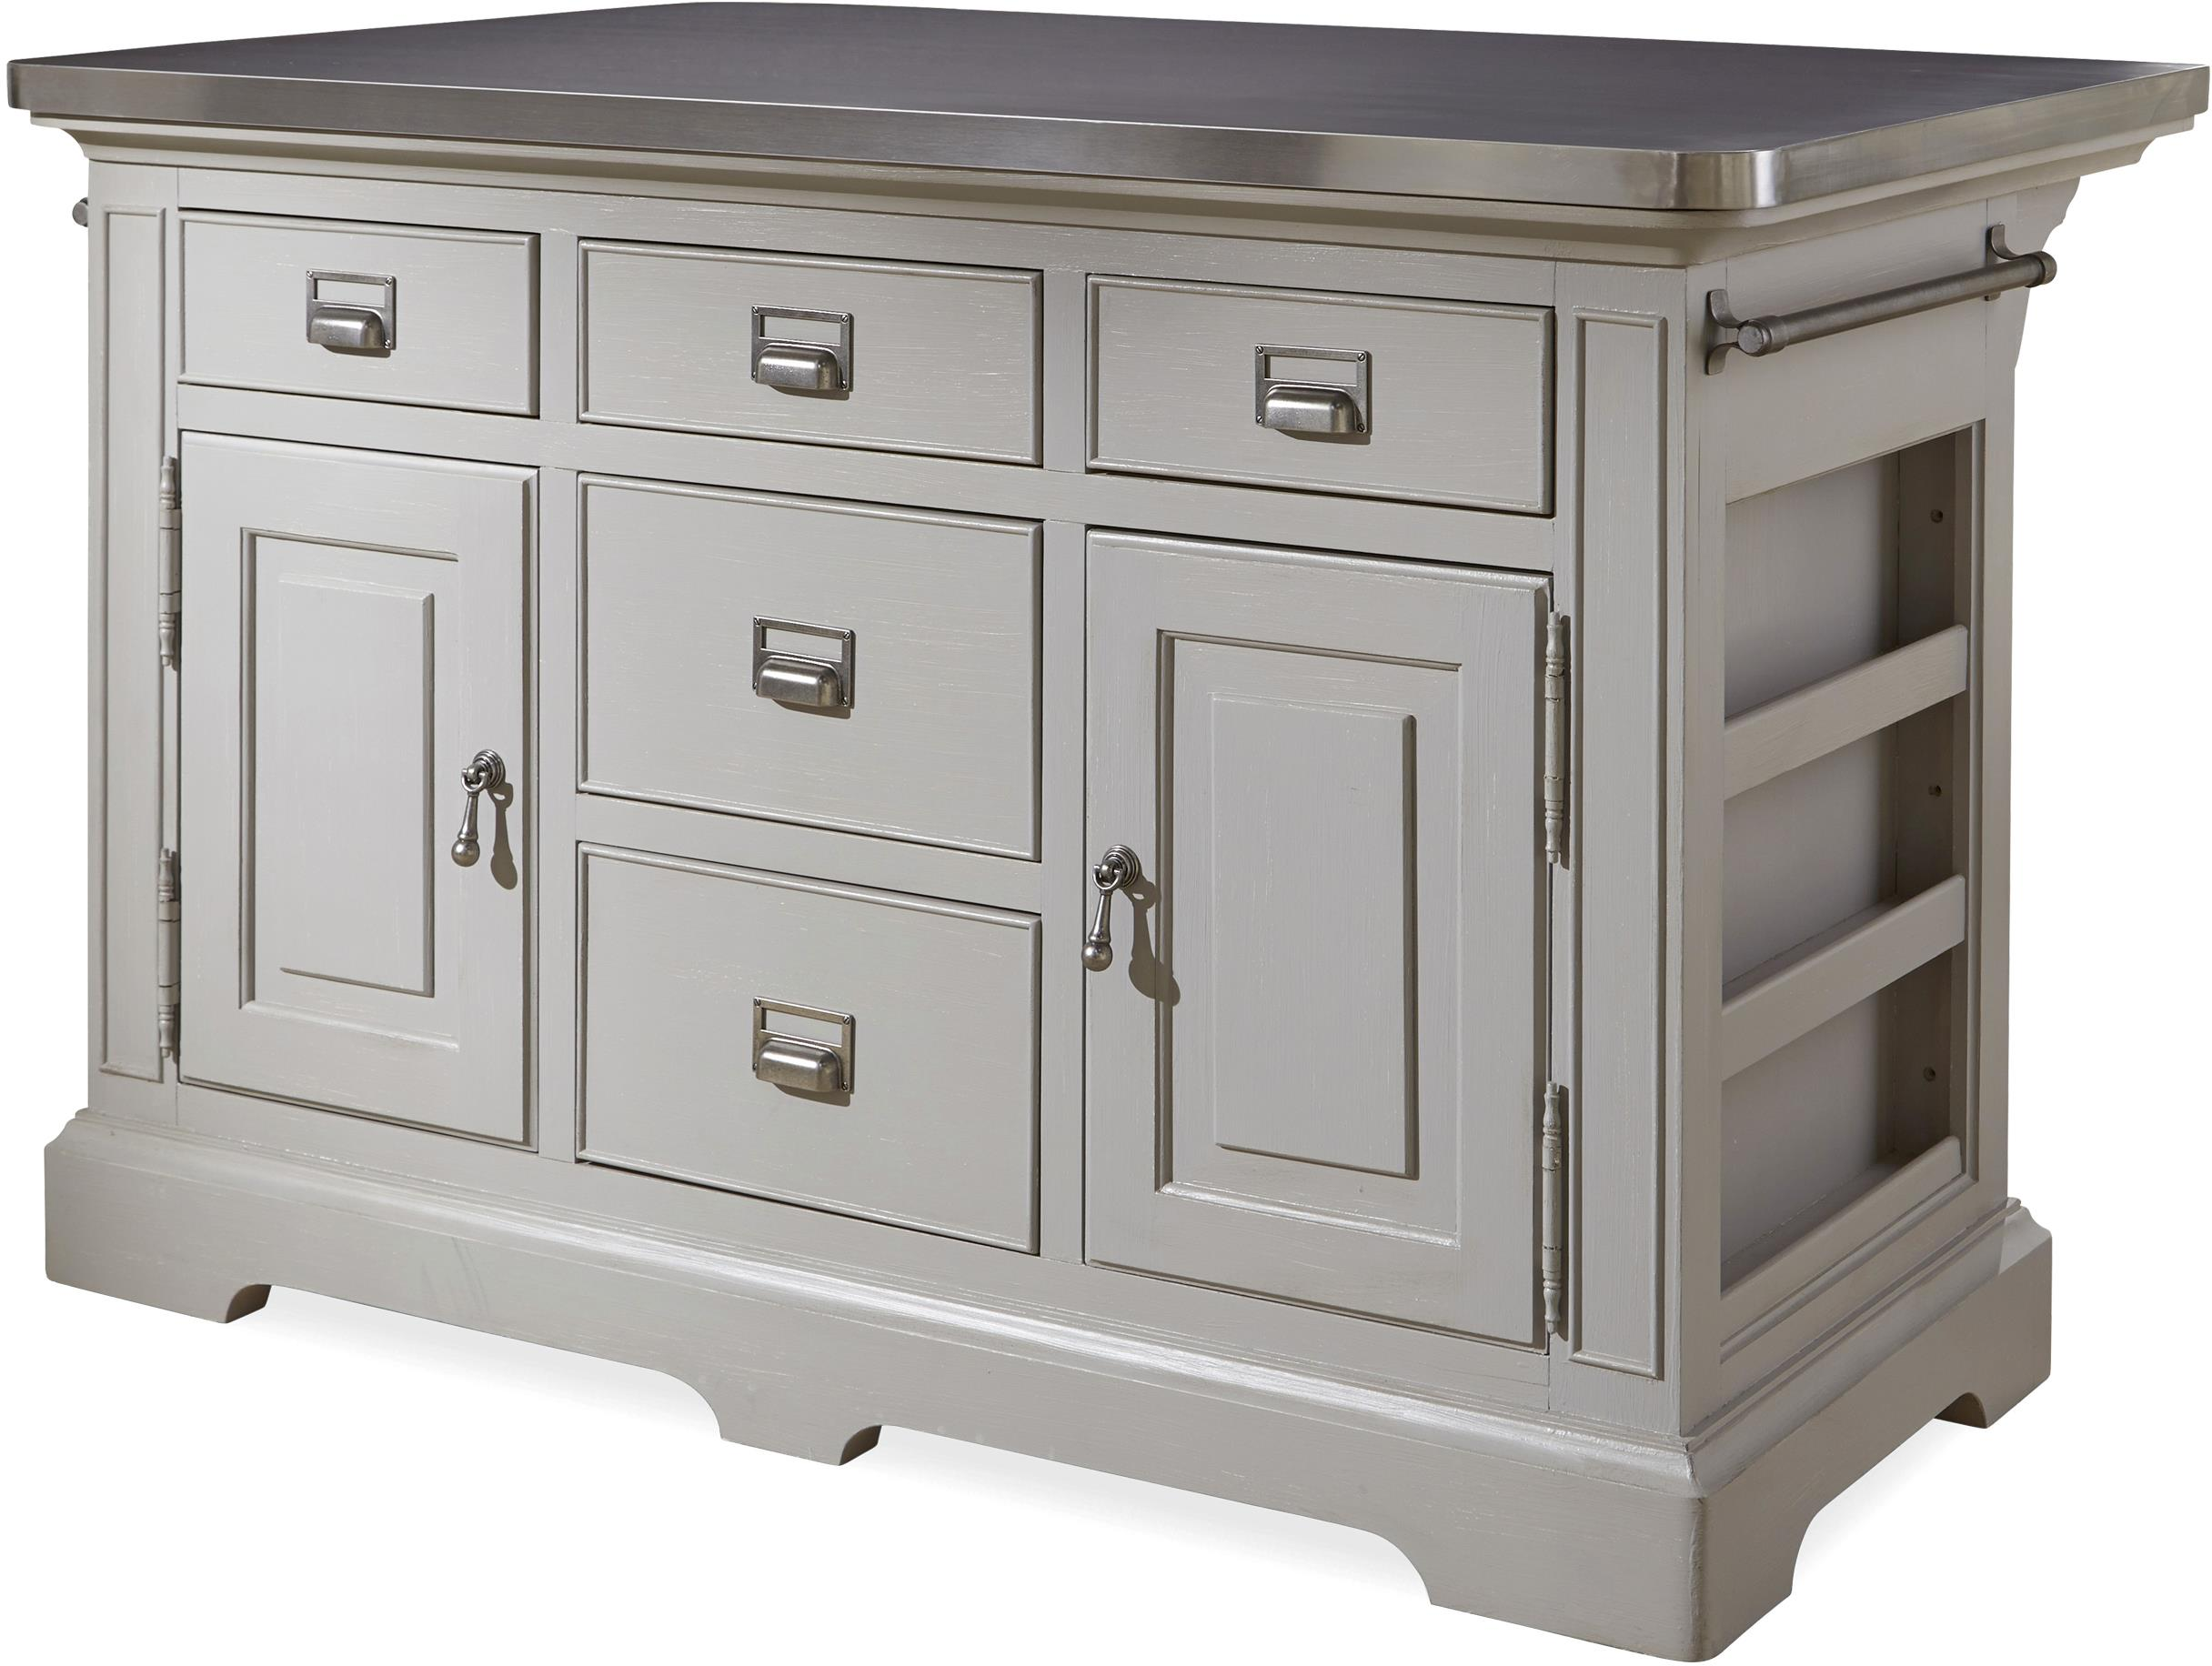 steel top kitchen island paula deen the kitchen island with stainless 22186